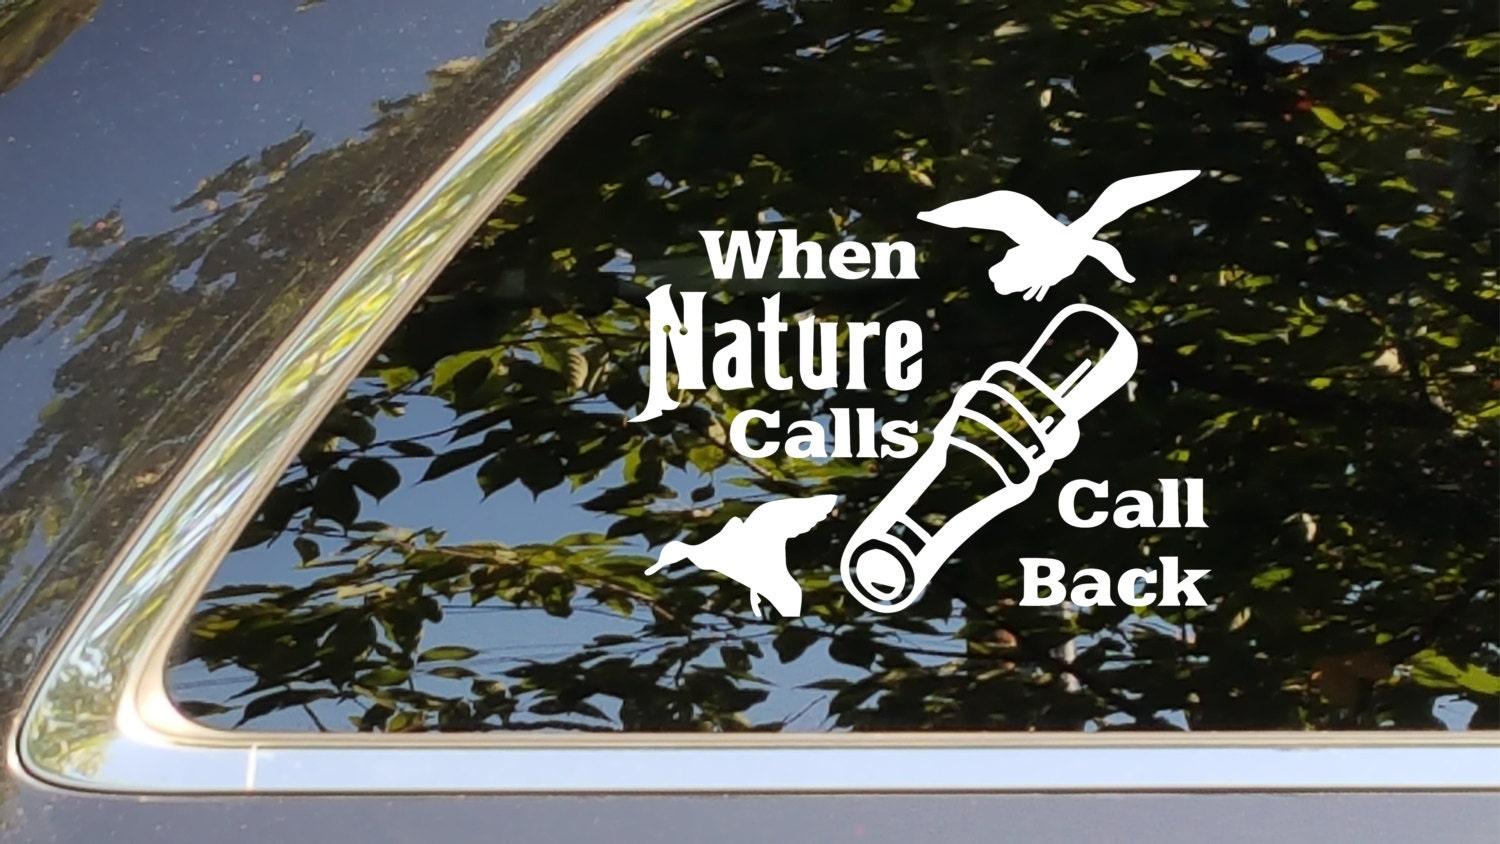 Hunting When Nature Calls Call Back Duck Hunting  Decal  Vinyl car sticker